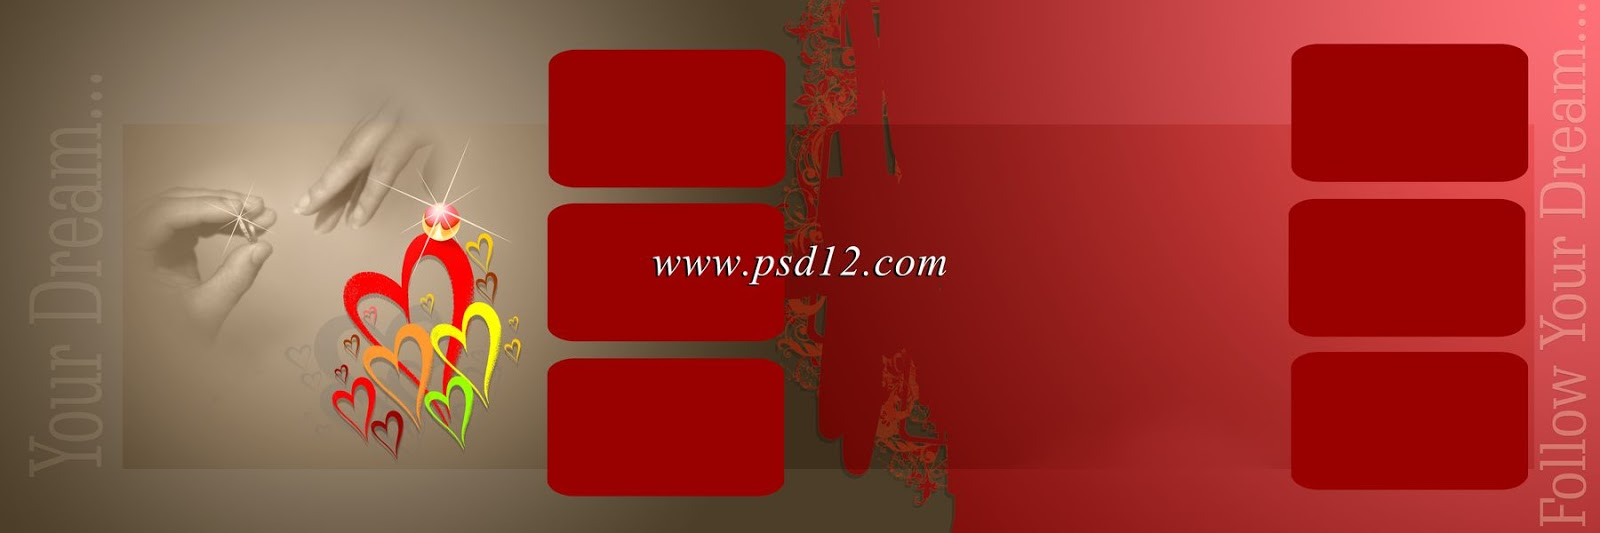 Psd background studio | psd background for …